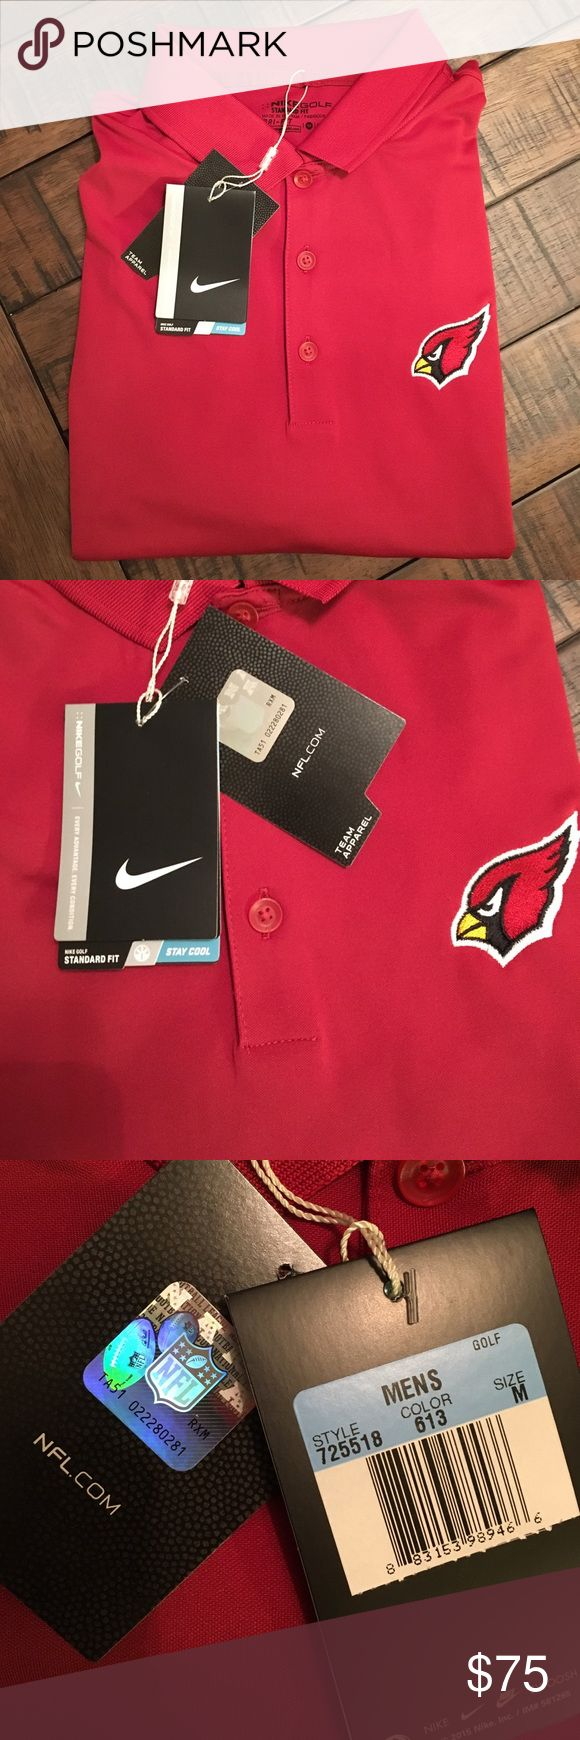 MEN'S NIKE ARIZONA CARDINALS DRI-FIT POLO Brand new with tags! Only taken out of the plastic to take photos! This polo is fantastic and a must have for casual wear or if you're a golfer! Football season is in full swing! 🏈🏈🏈🏈🏈Will discount when bundled with another item. Will consider offers. No low balling please. Nike Shirts Polos